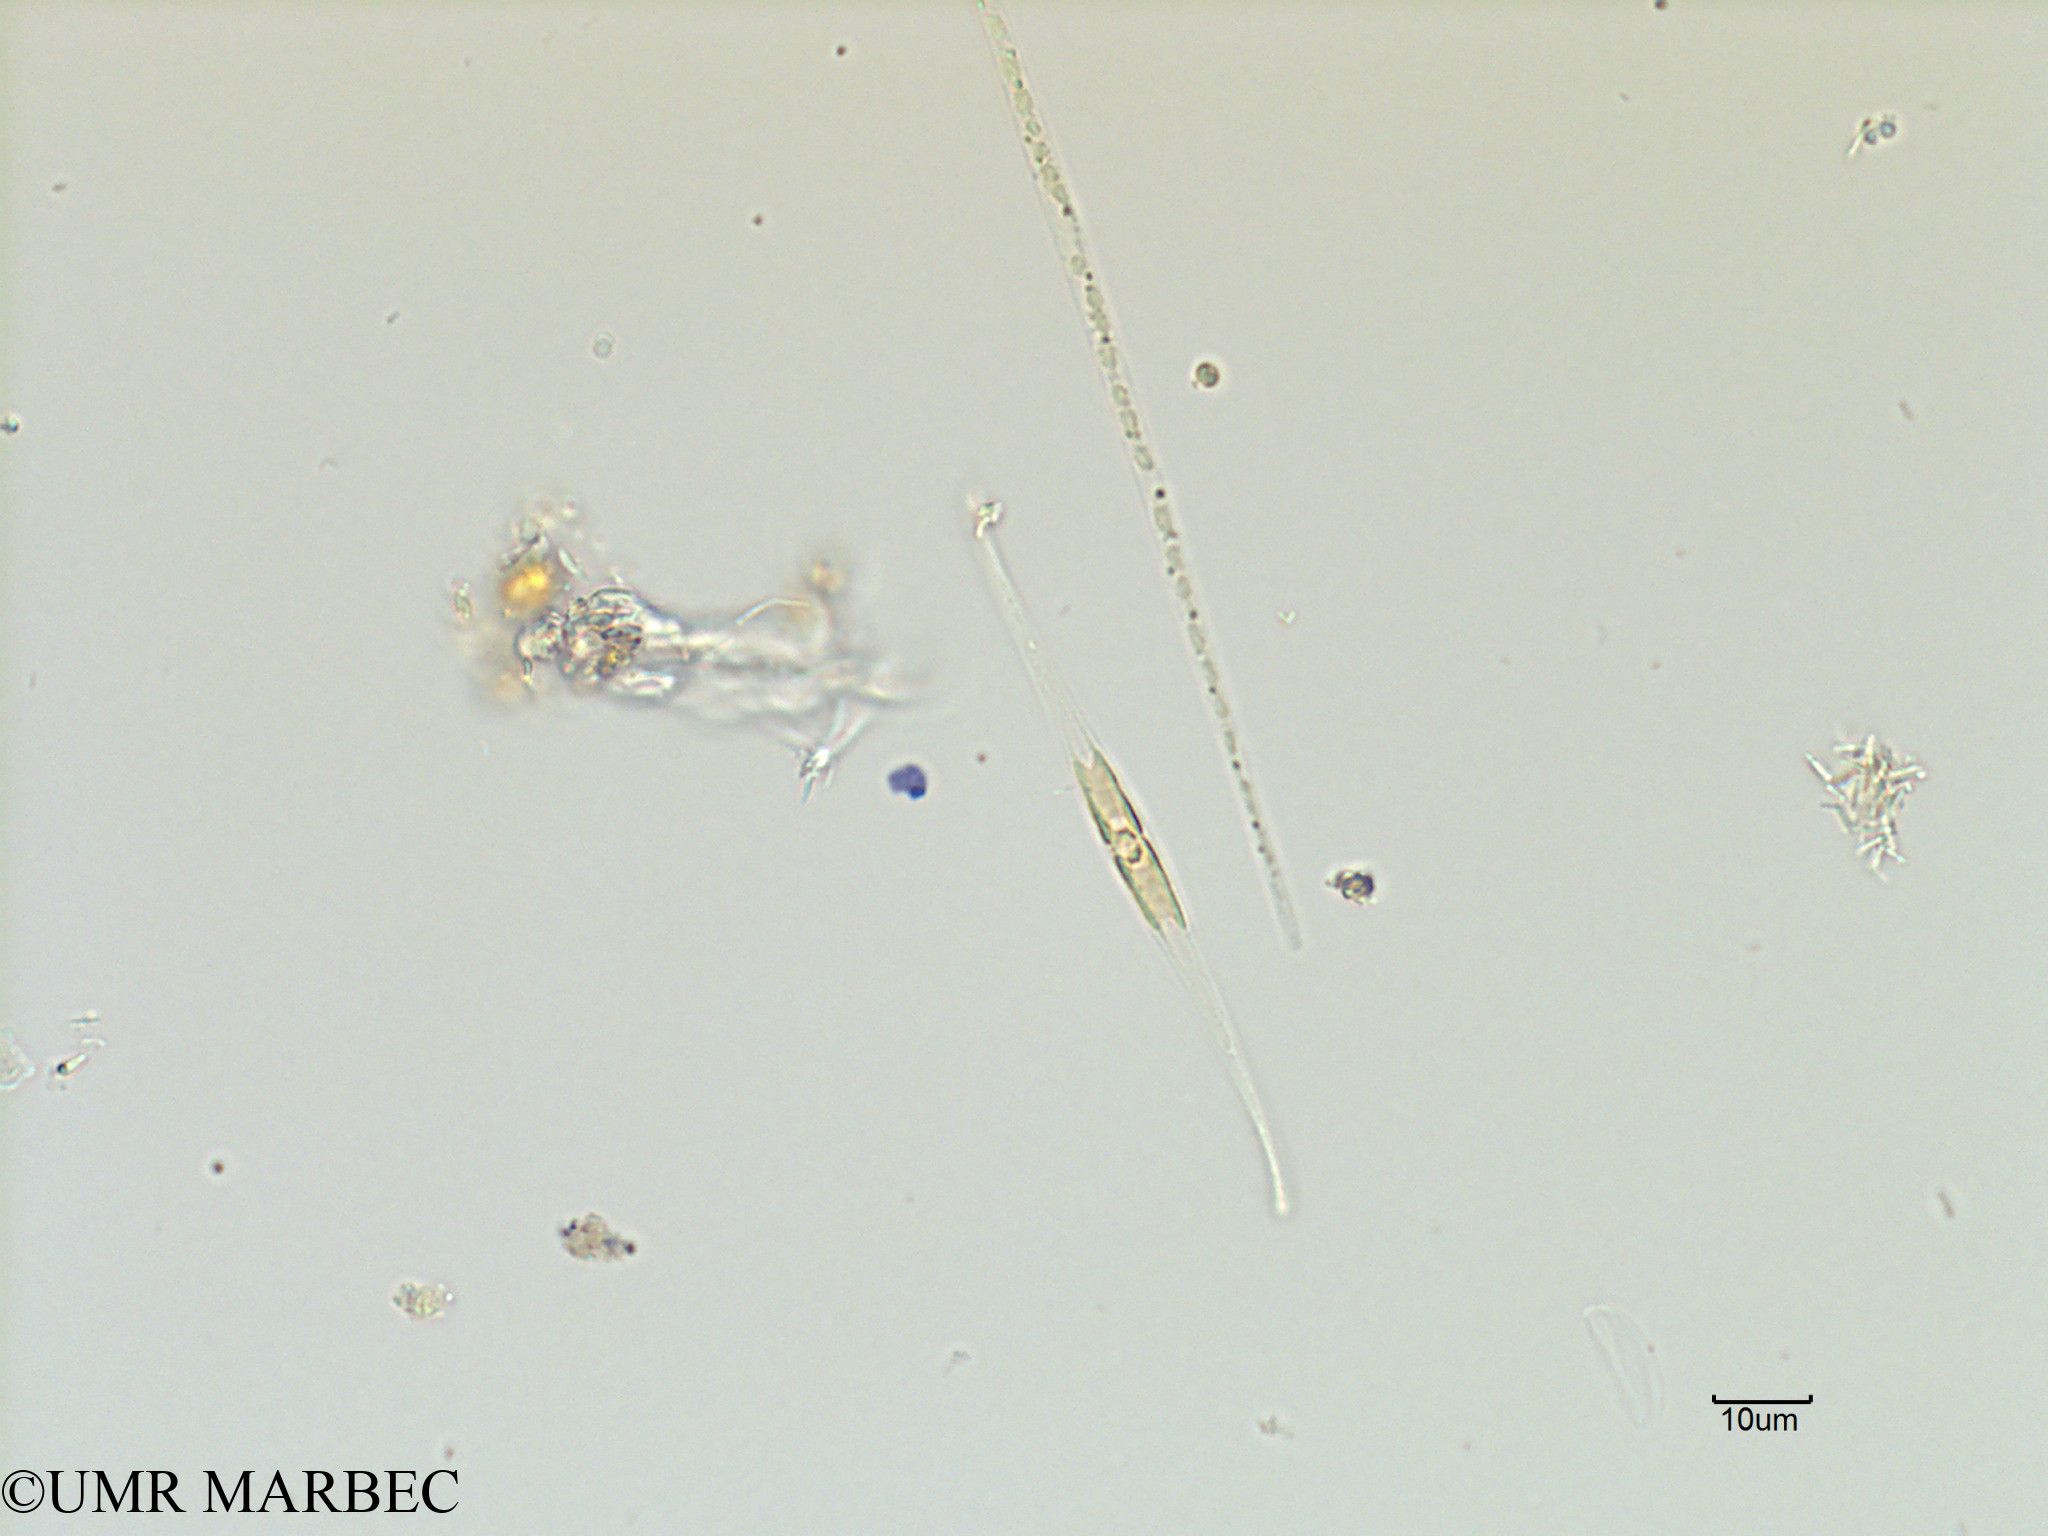 phyto/Scattered_Islands/iles_glorieuses/SIREME November 2015/Gyrosigma prolongatum (SIREME-Glorieuses2015-ech1-171116-Pleurosigma ou nitzschia-4)(copy).jpg